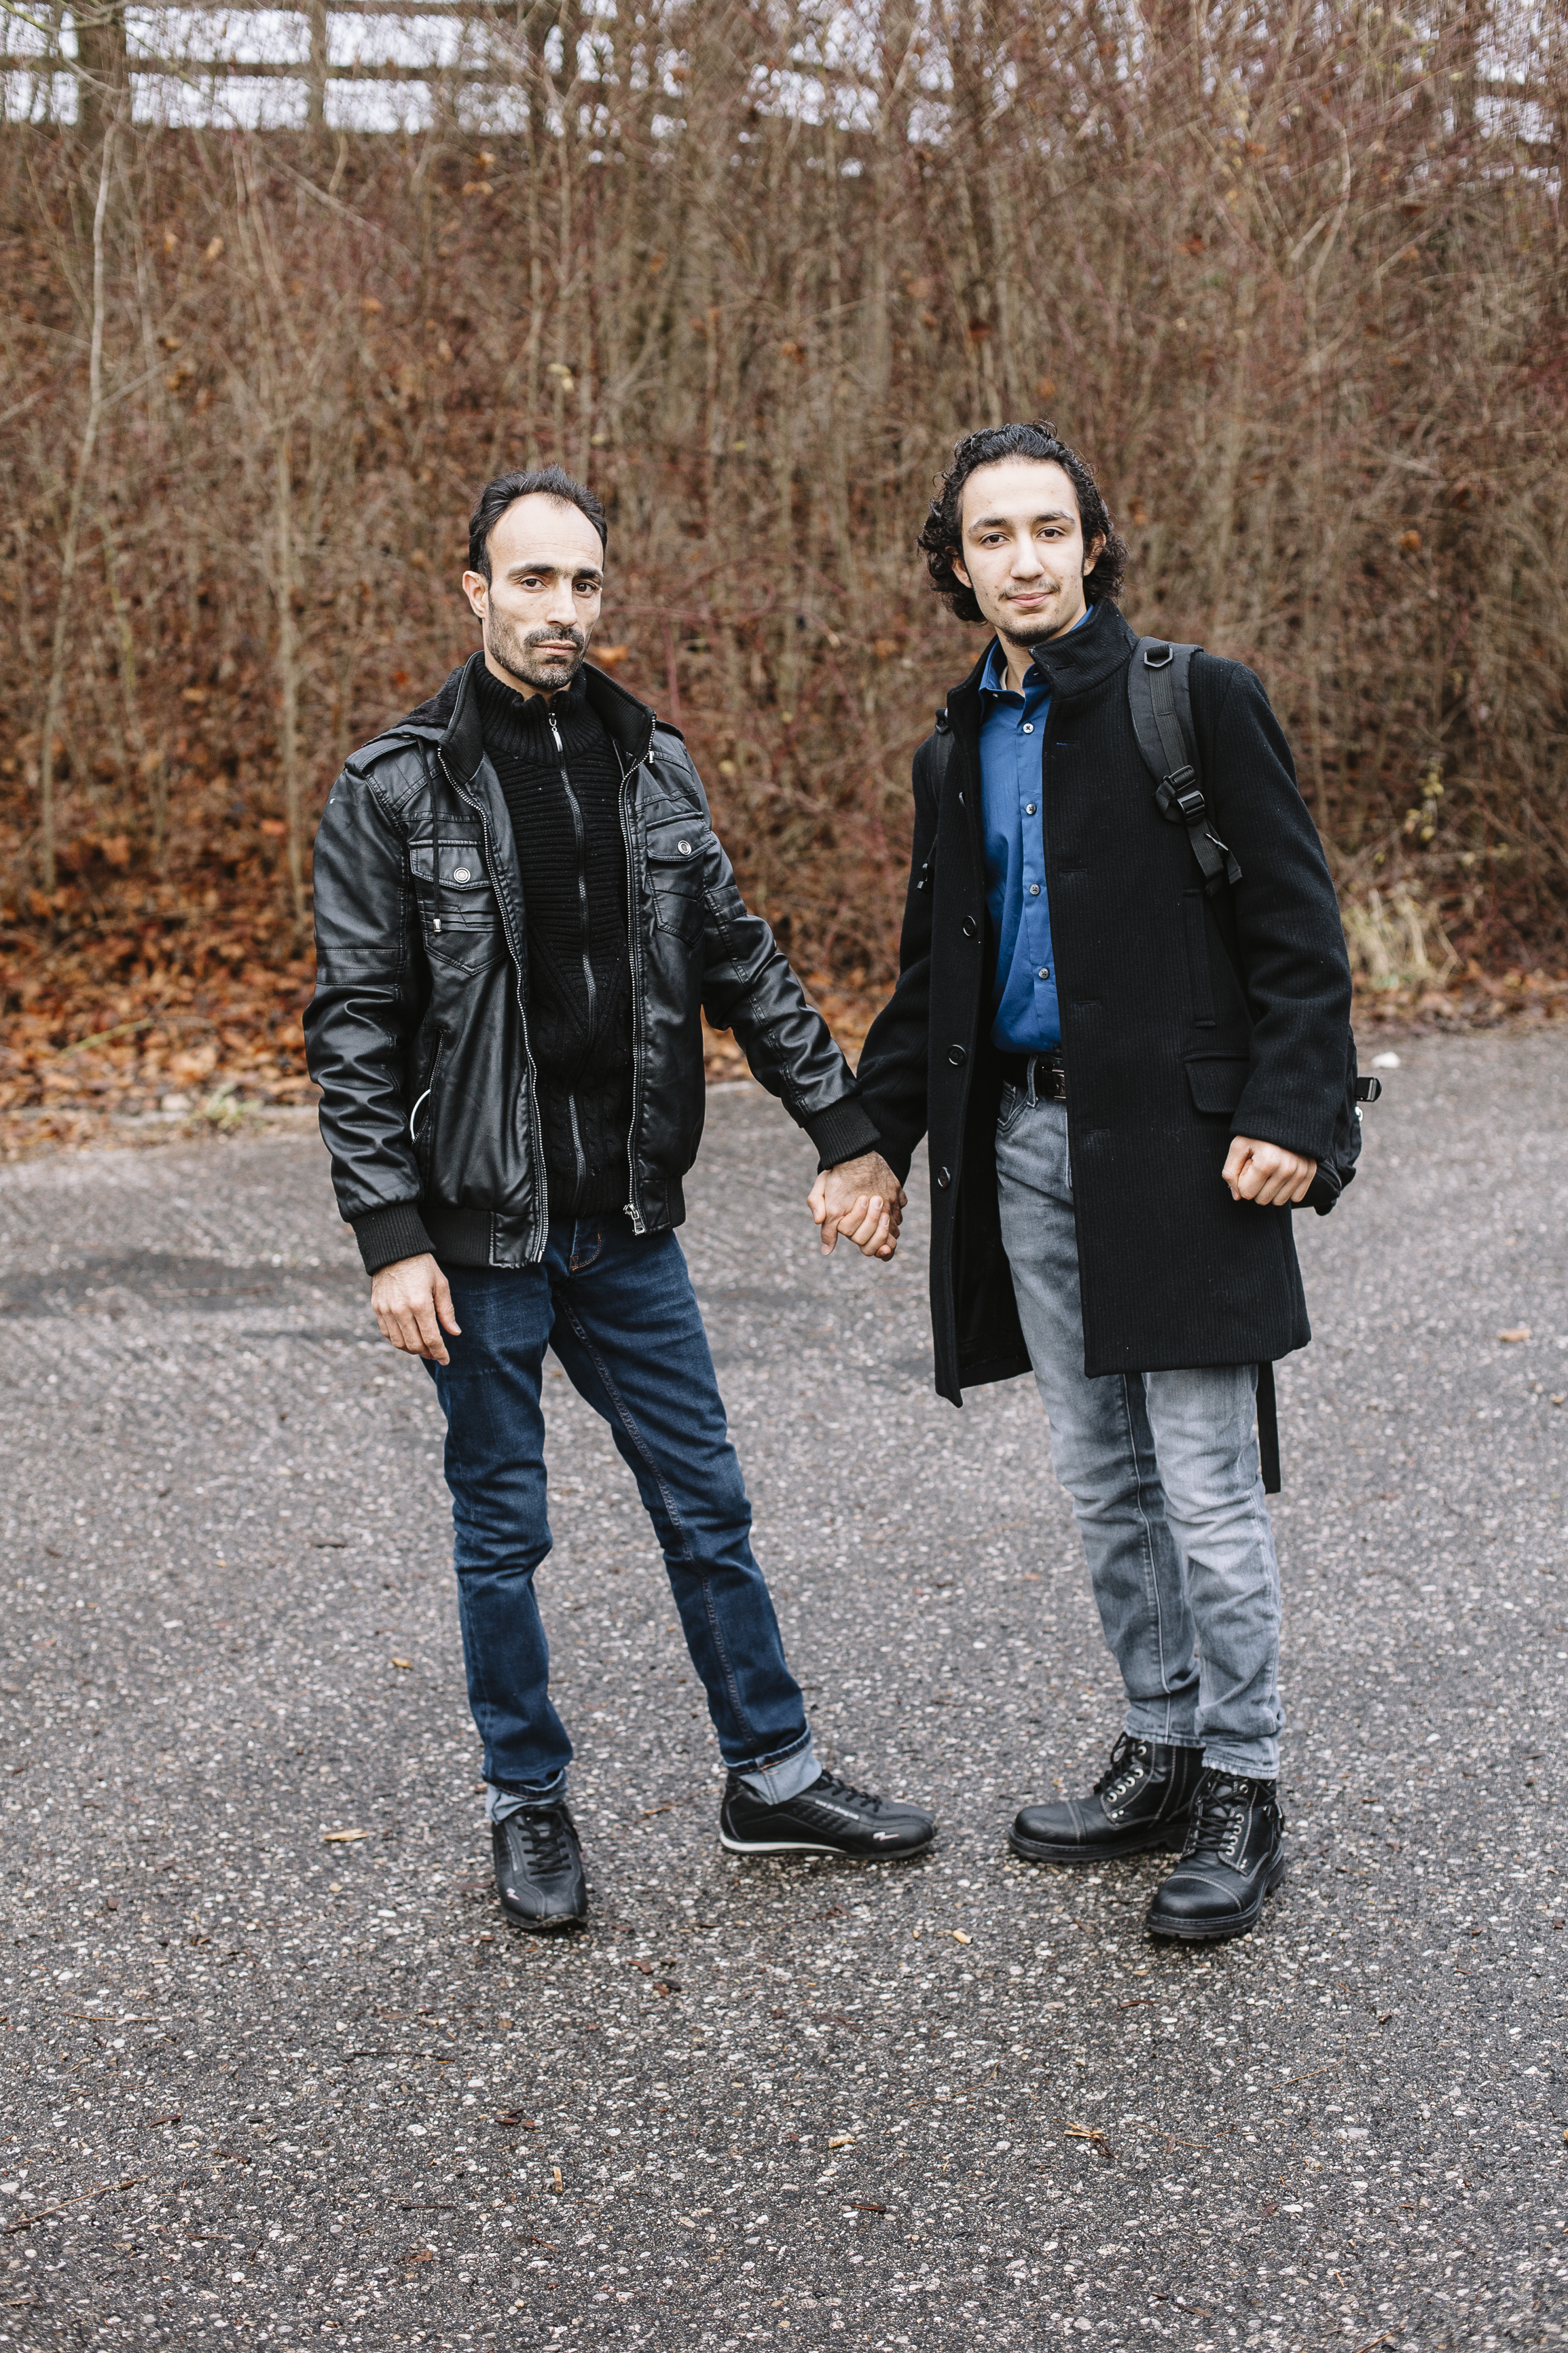 Ahmad mit seinem Vater / Ahmad with his father